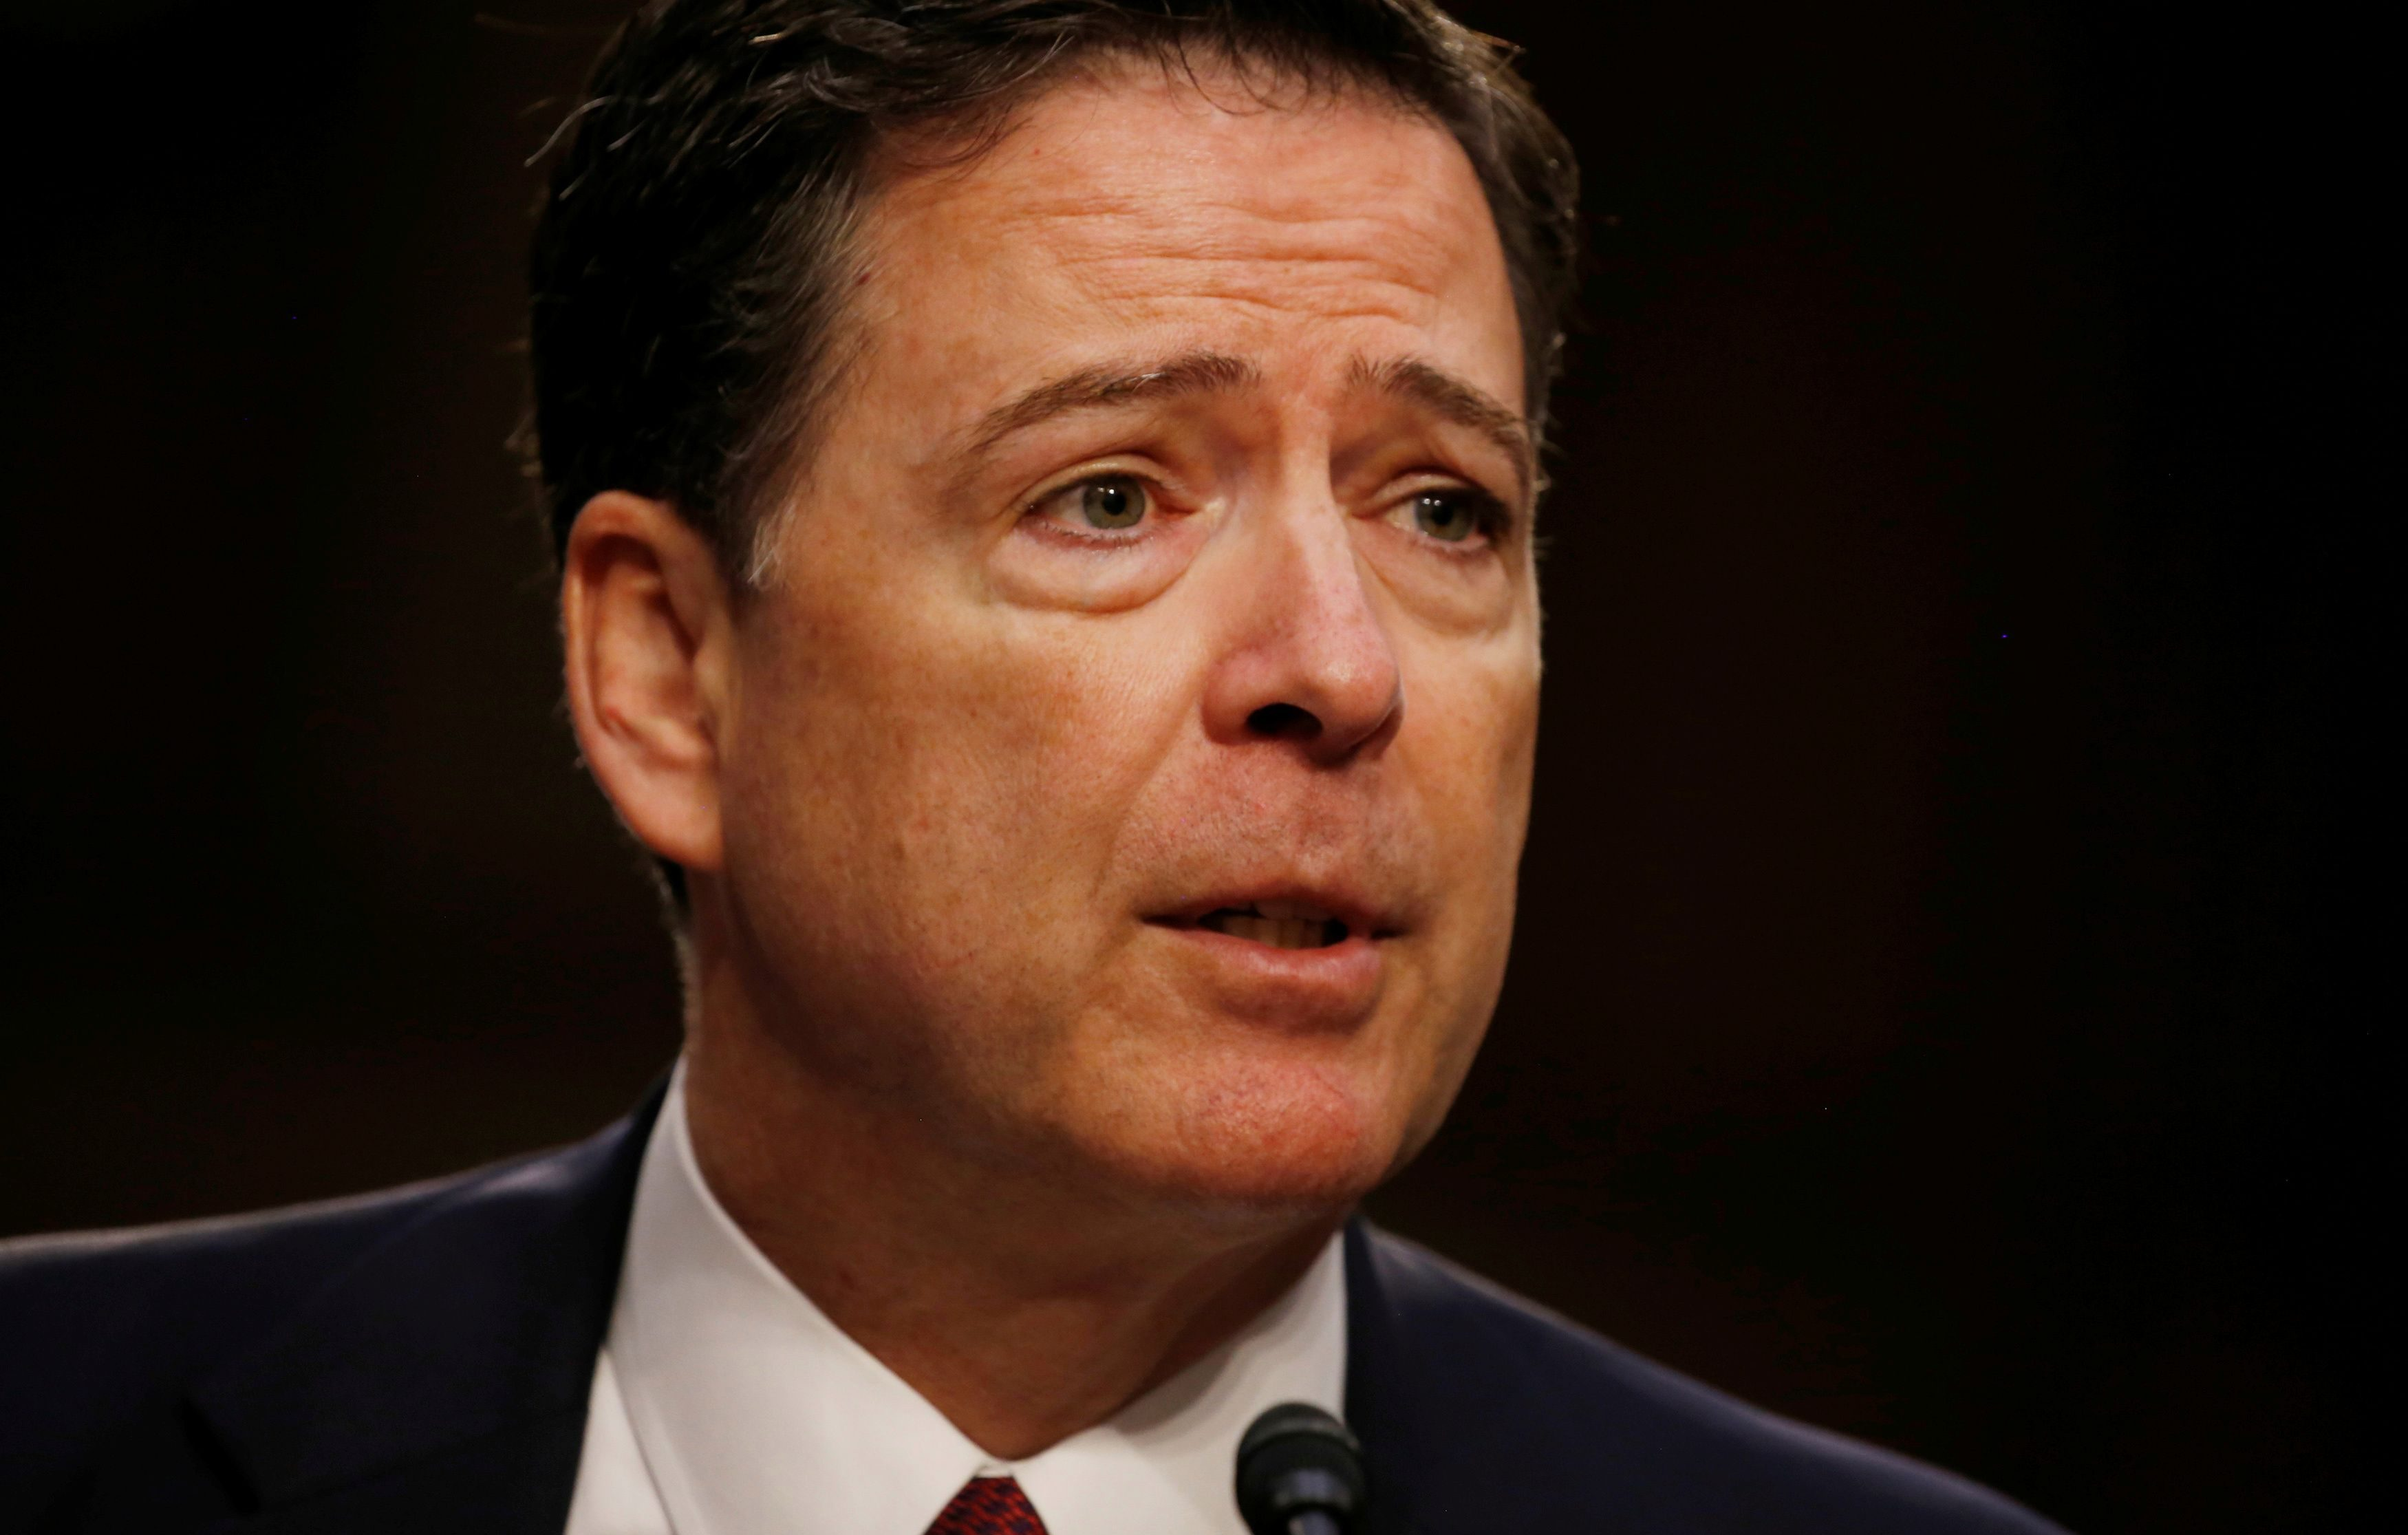 Former FBI Director James Comey calls President Trump 'morally unfit' for office